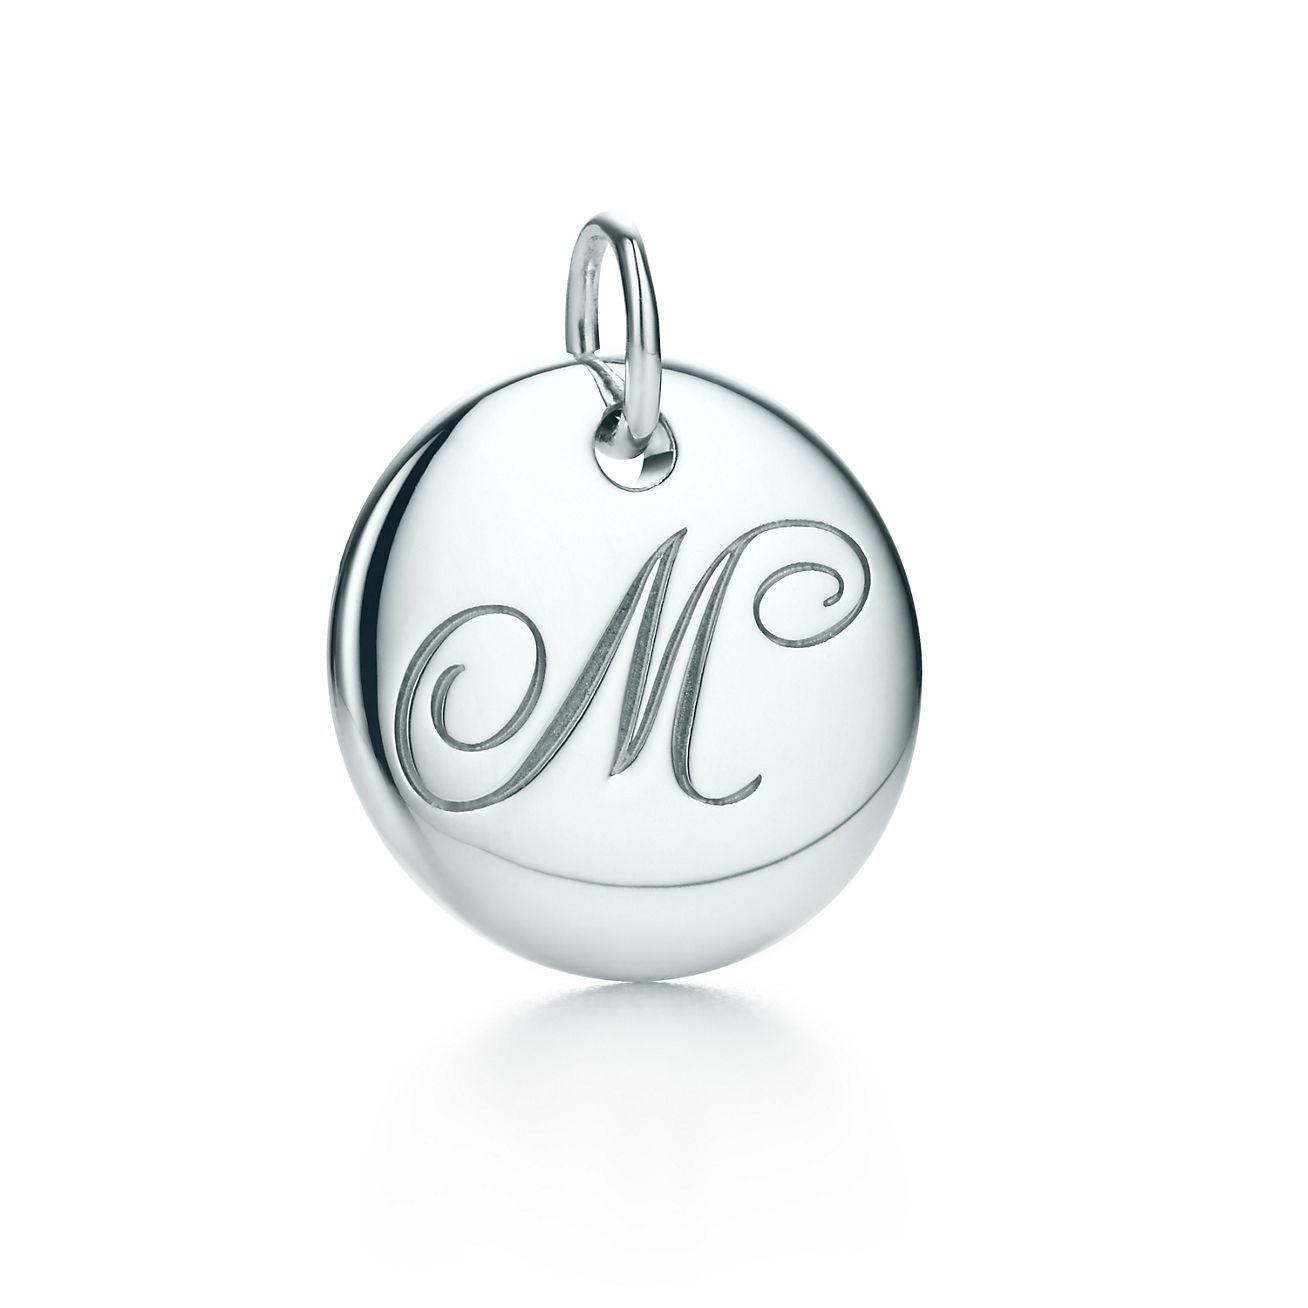 Tiffany Notes alphabet disc charm in silver, small Letters A-Z available - Size B Tiffany & Co.